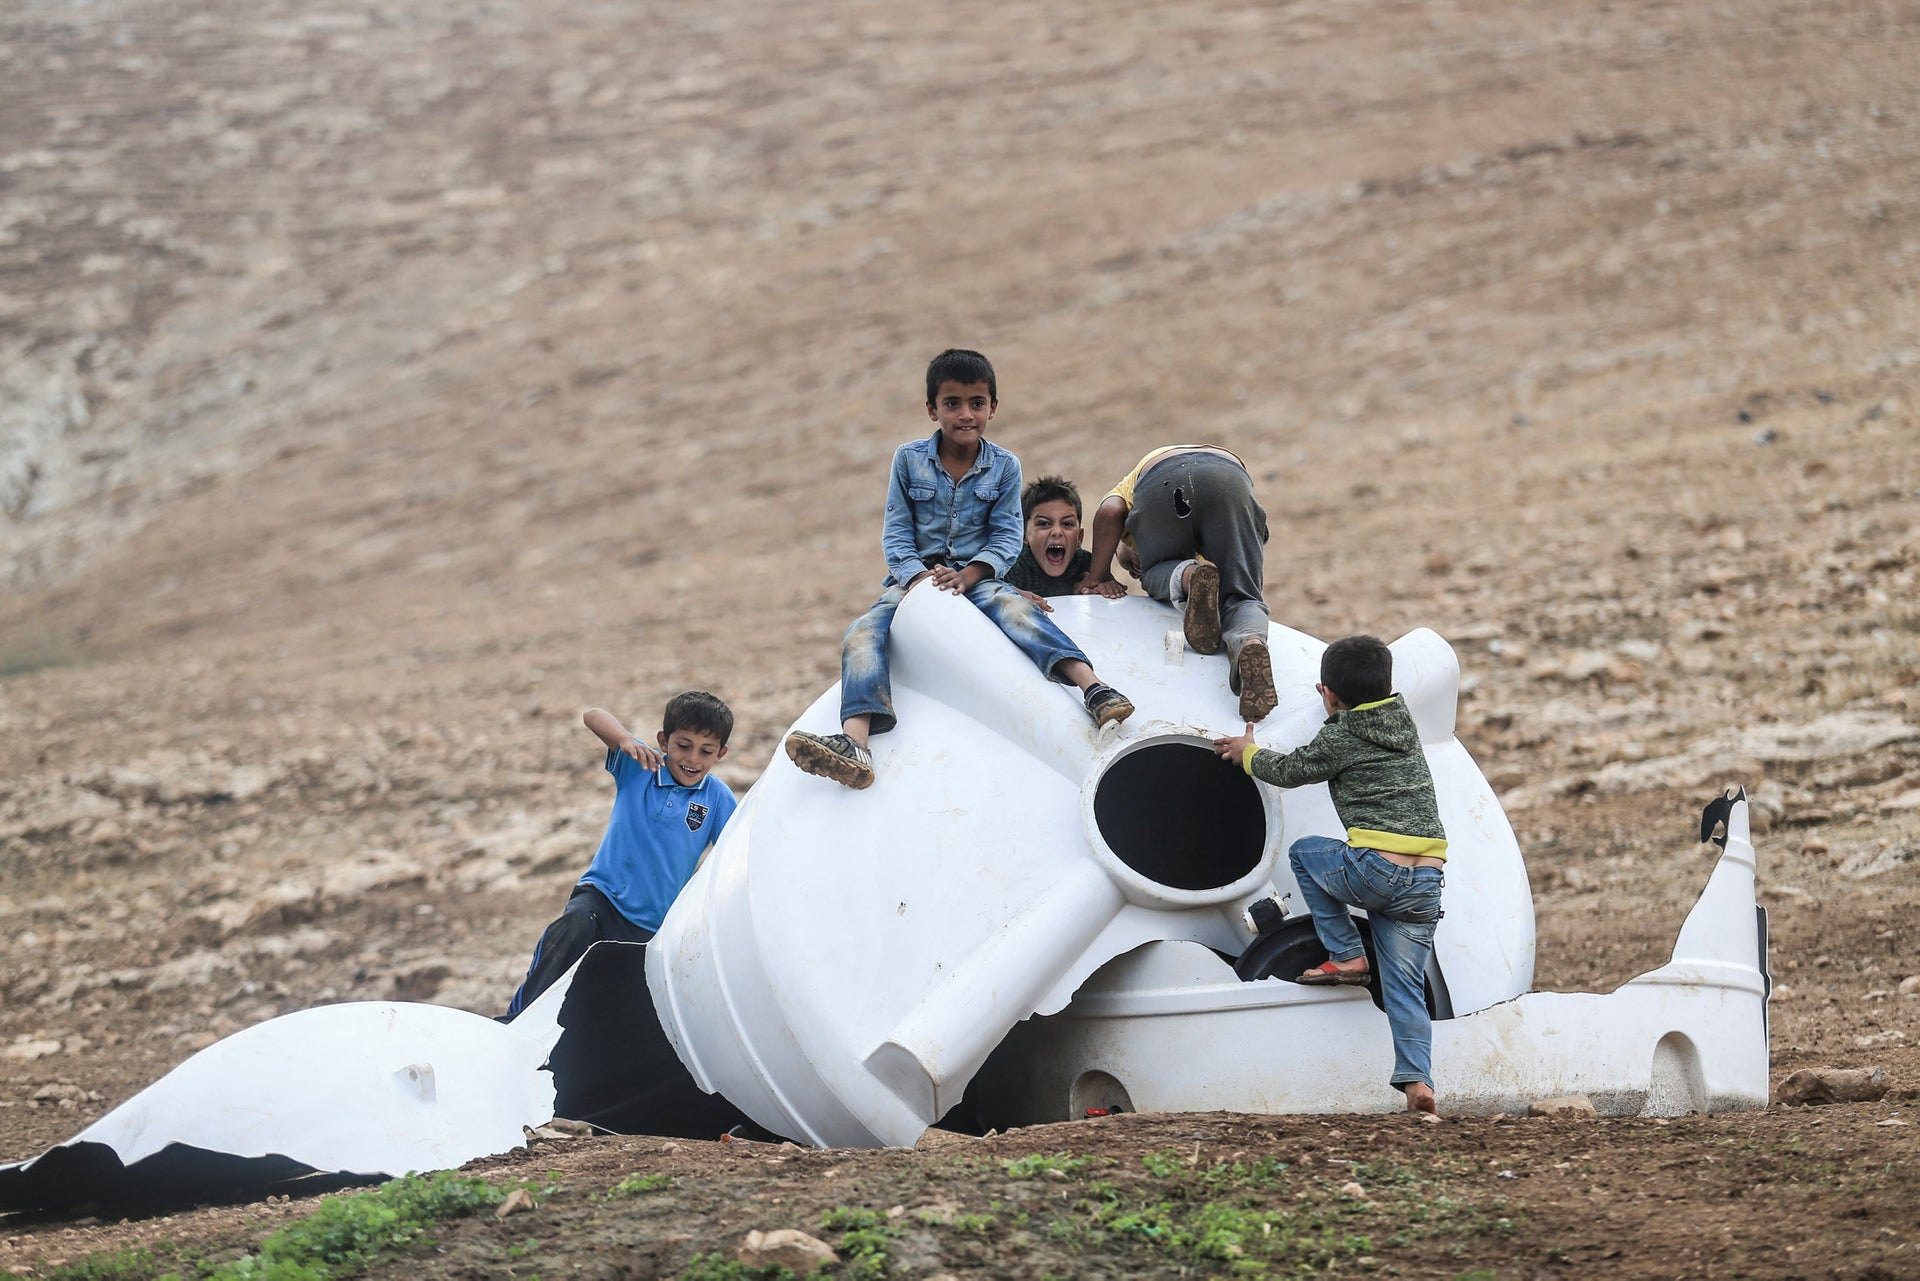 Children play in the ruins of Khirbet Humsa after its demolition, November 2020.